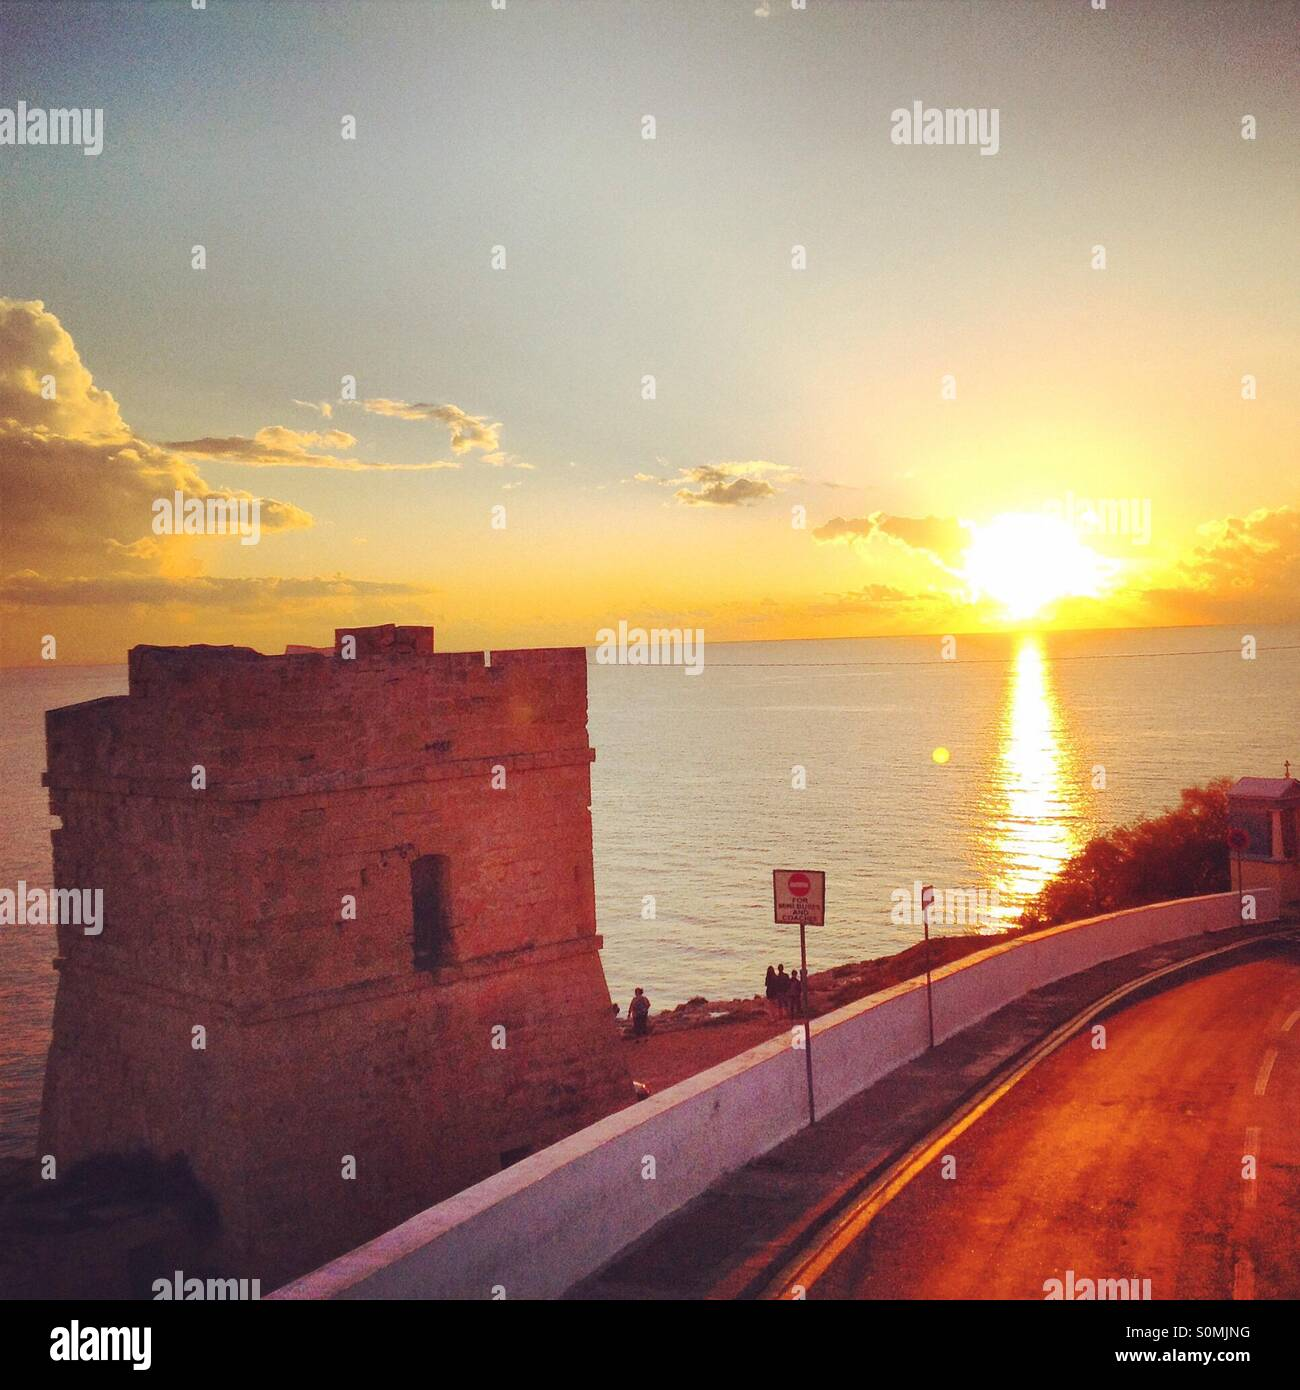 Sunset in Malta - Stock Image